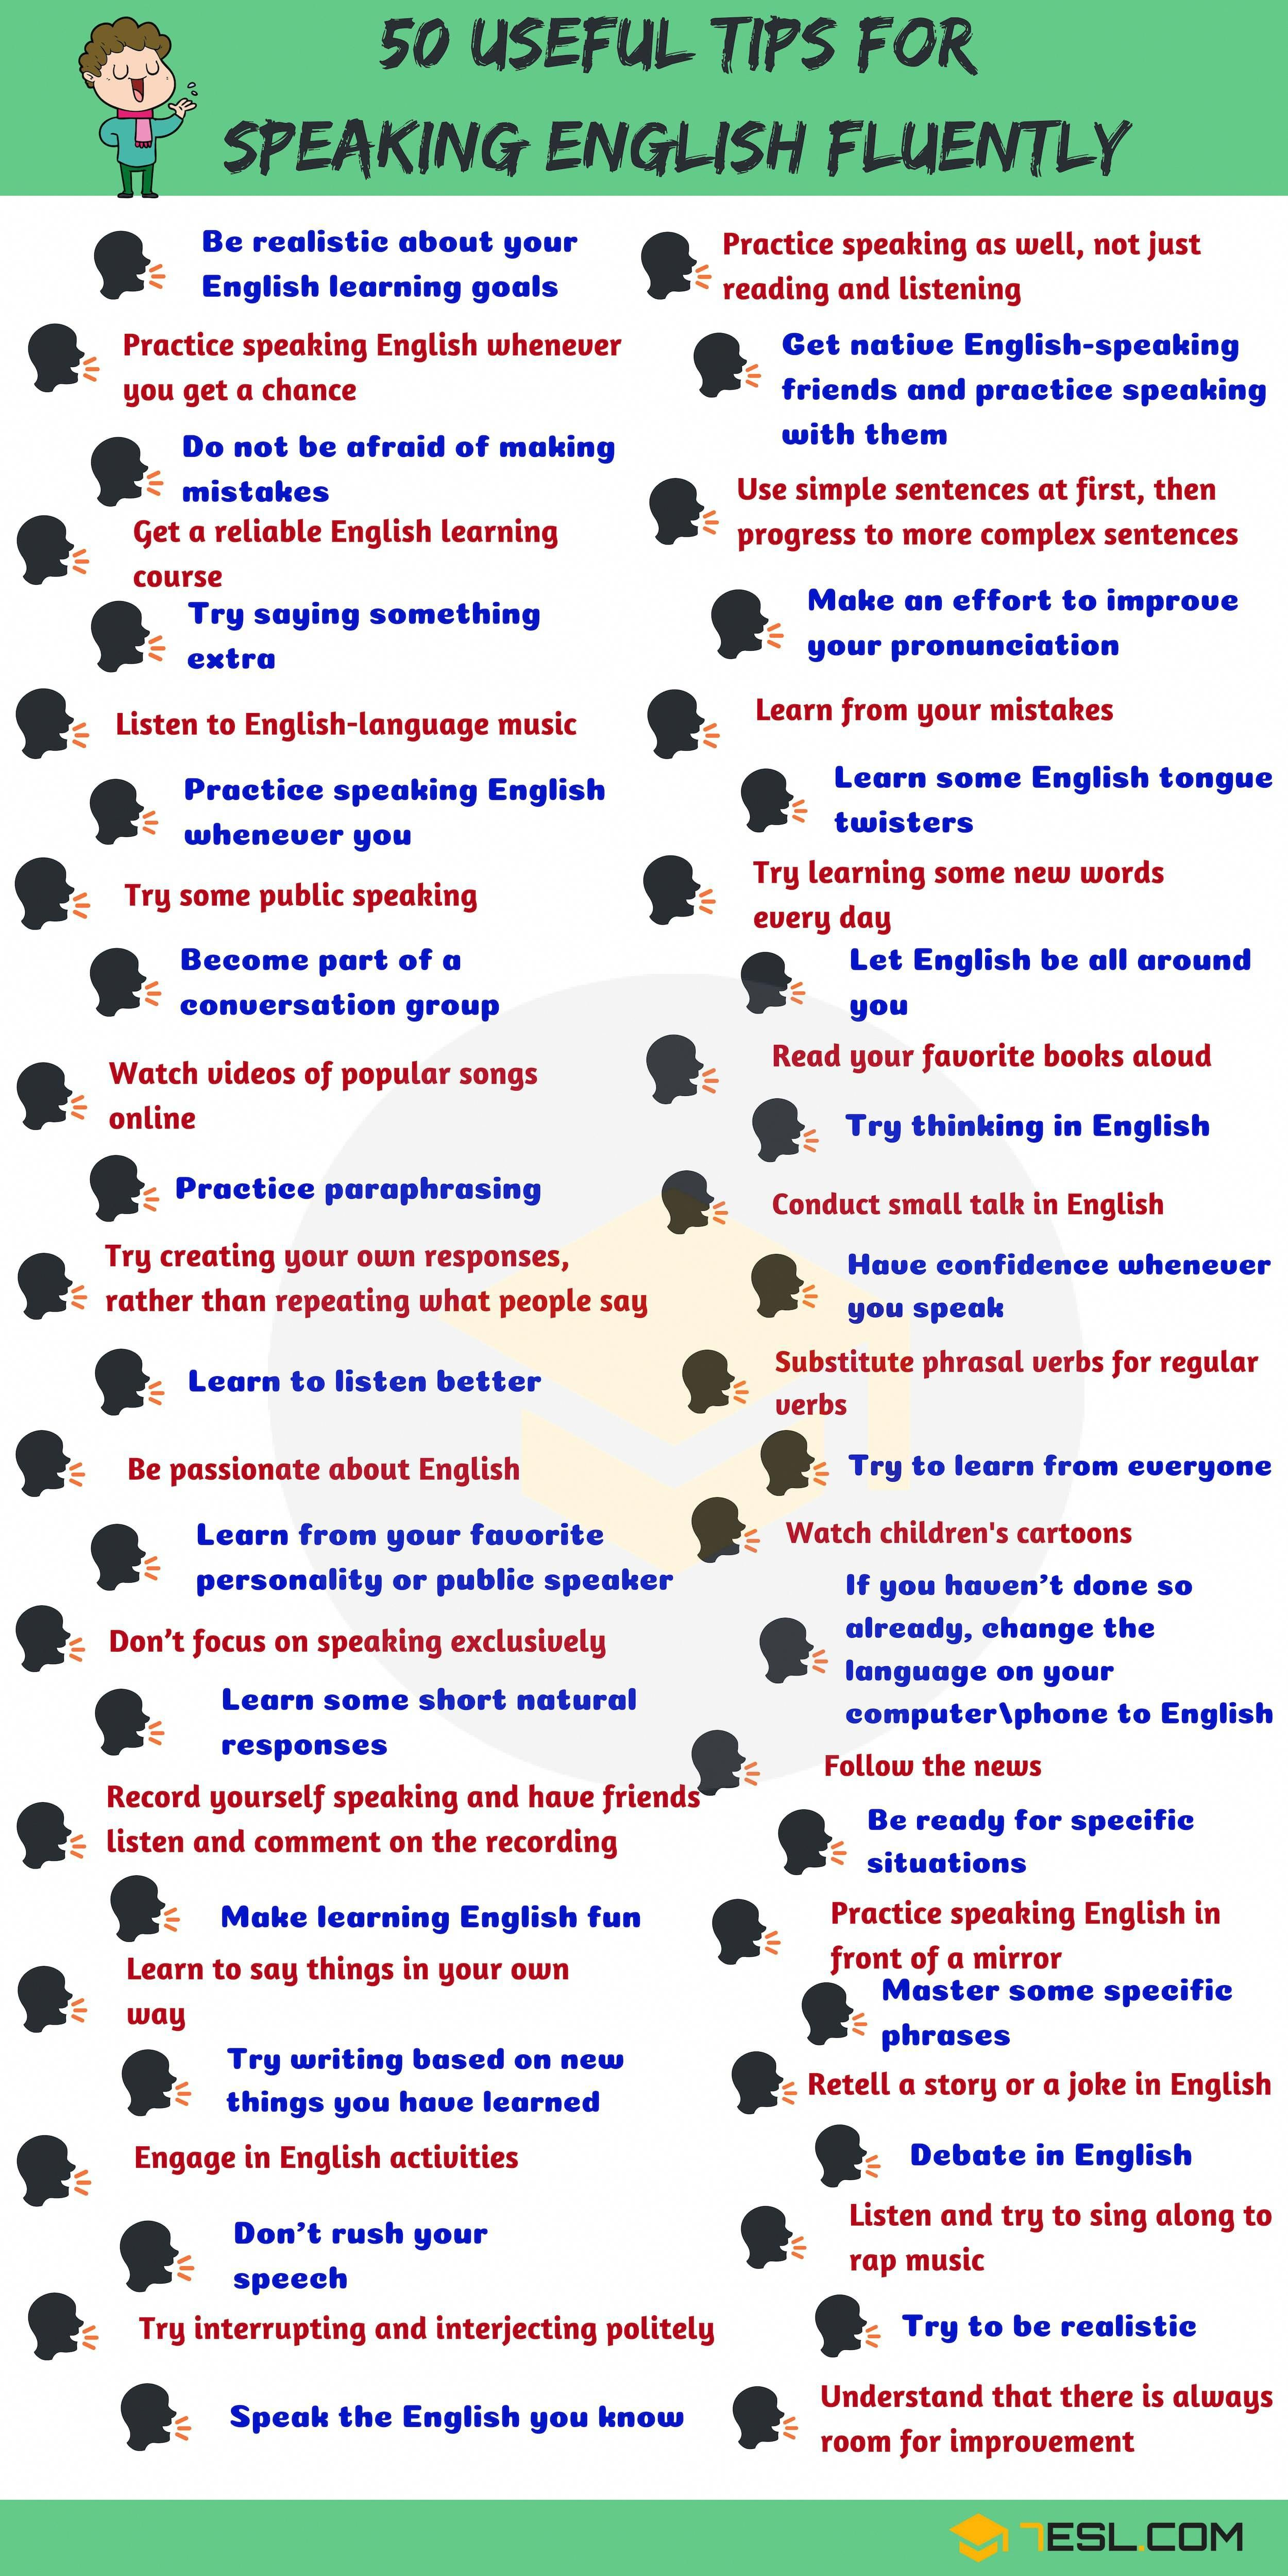 50 Simple Tips For Speaking English Fluently 7 E S L Onlineschools Webcourses Coursesites Onlin In 2020 Speak English Fluently Learn English Speaking Fluent English